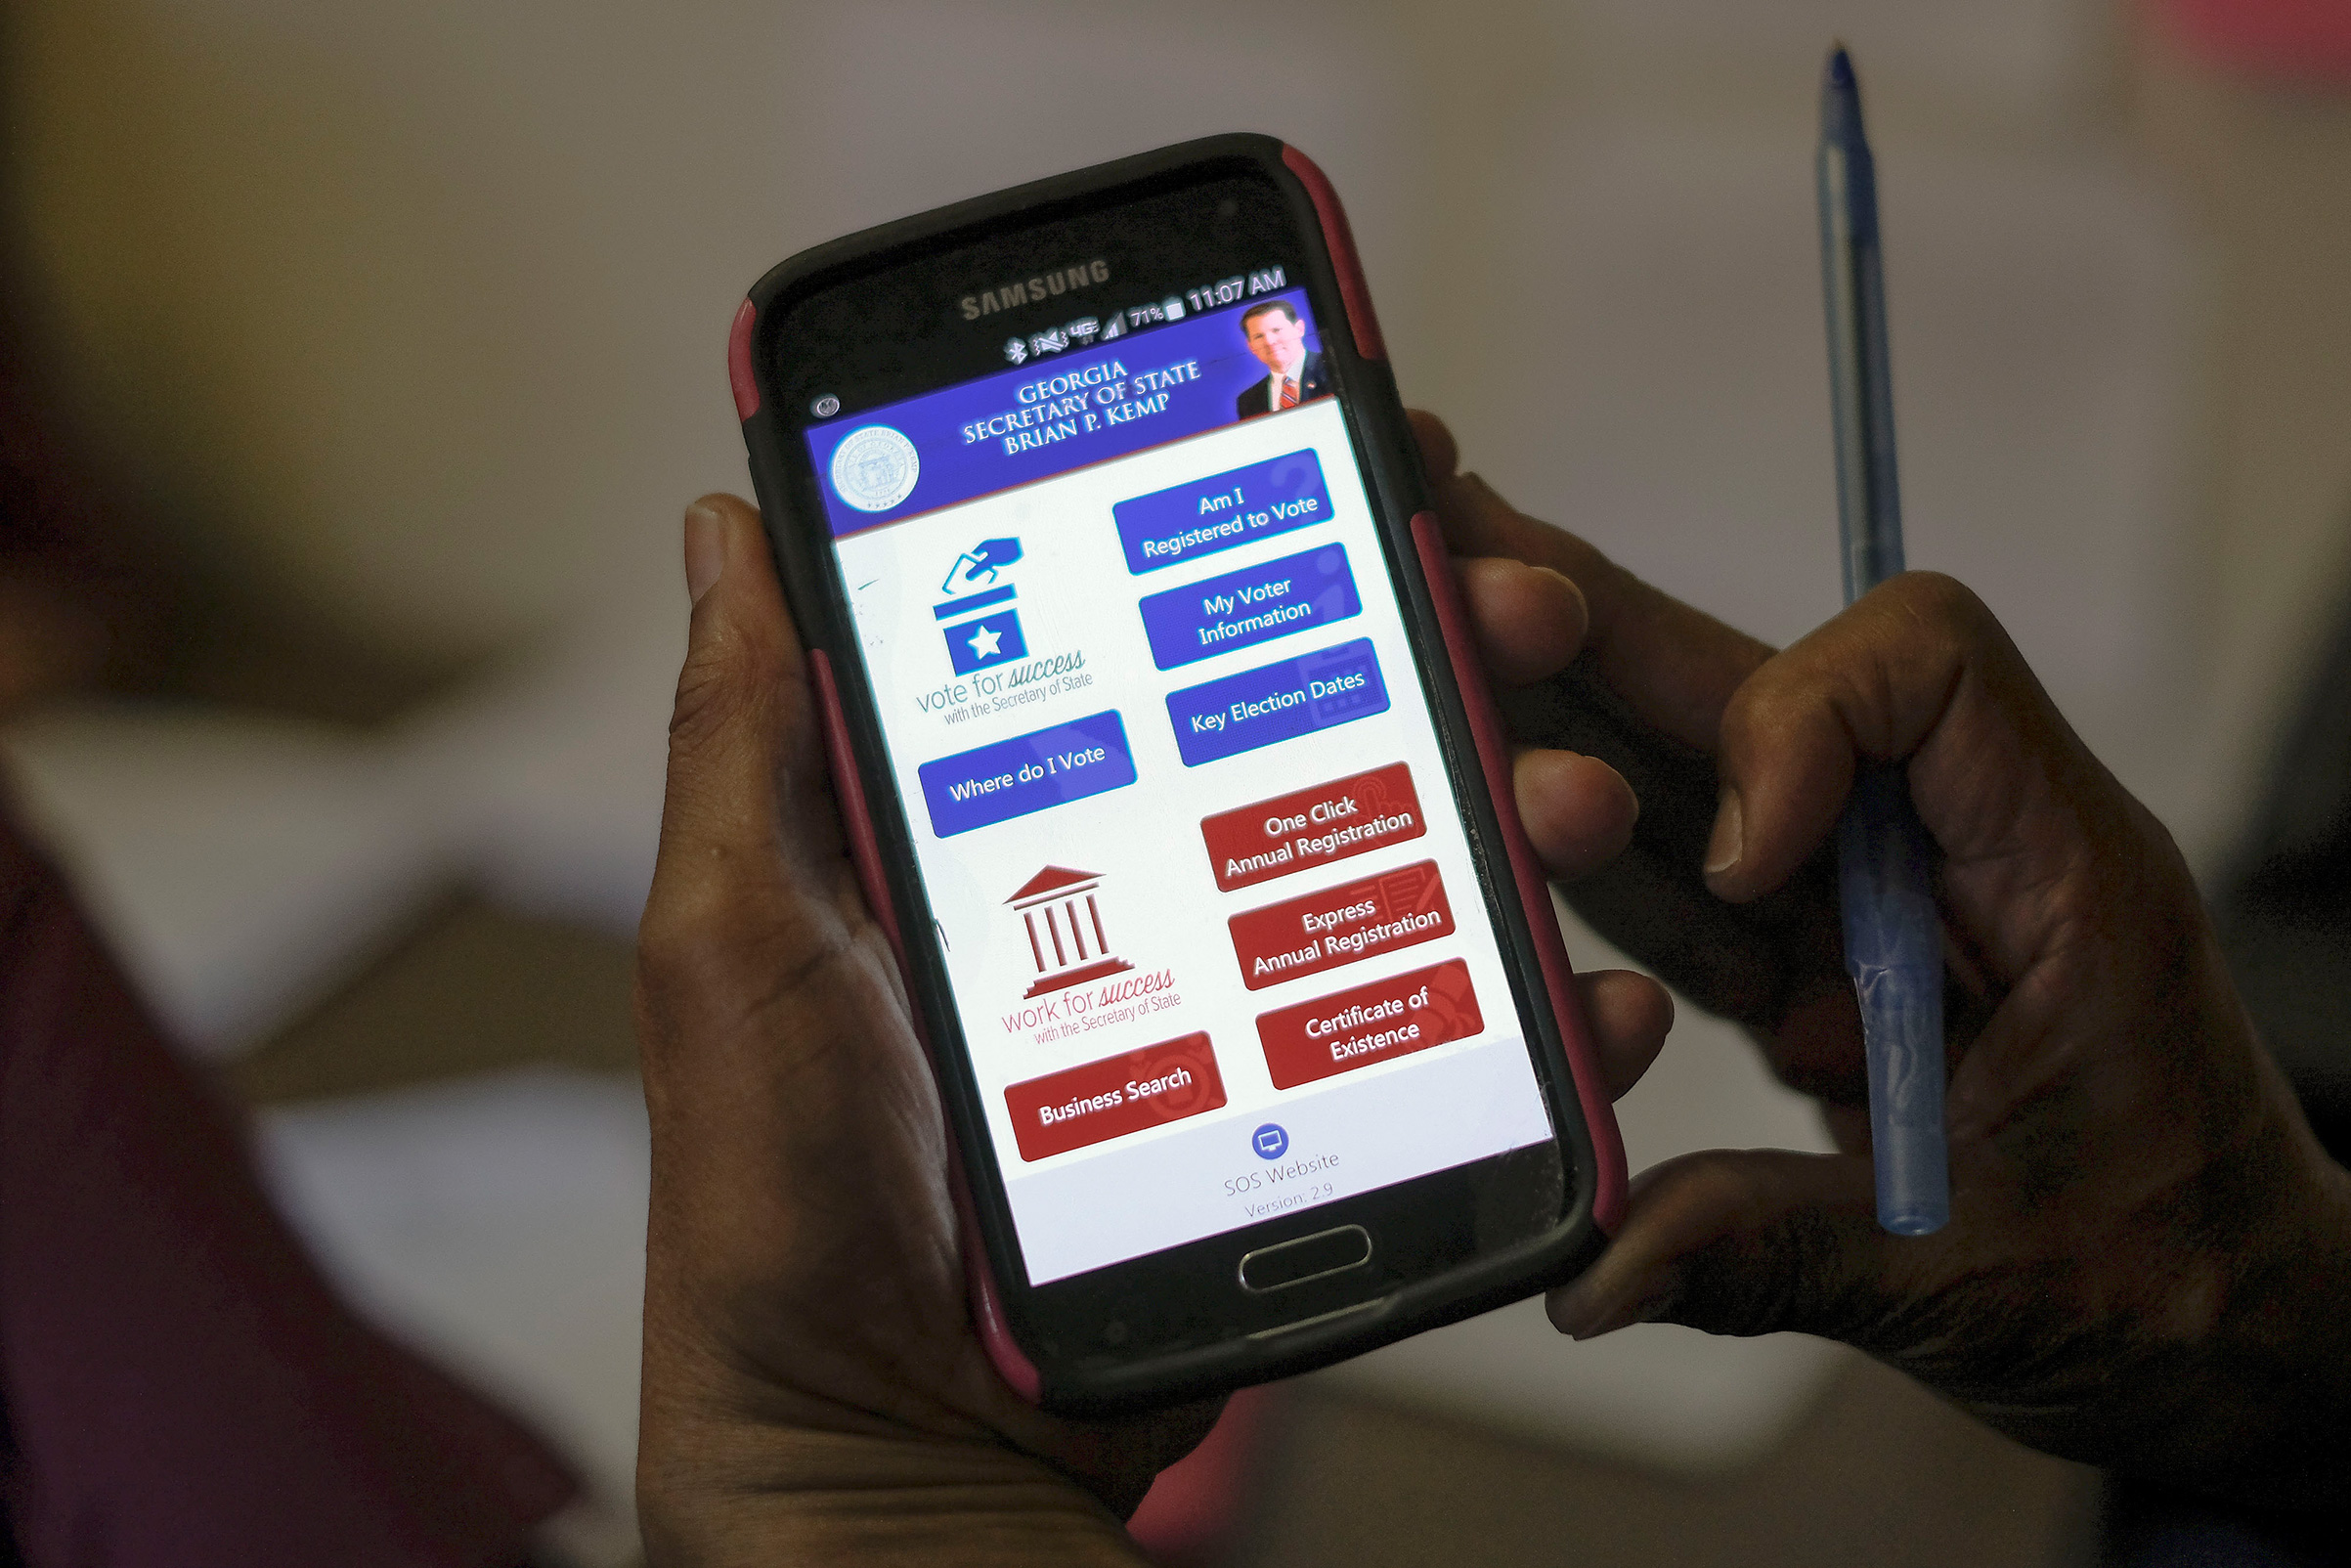 The Georgia SOS app is used by members of Women on the Move to confirm registration and polling precincts with callers at the Urban League of Greater Columbus in Columbus, Ga. on election day, Nov. 6, 2018.